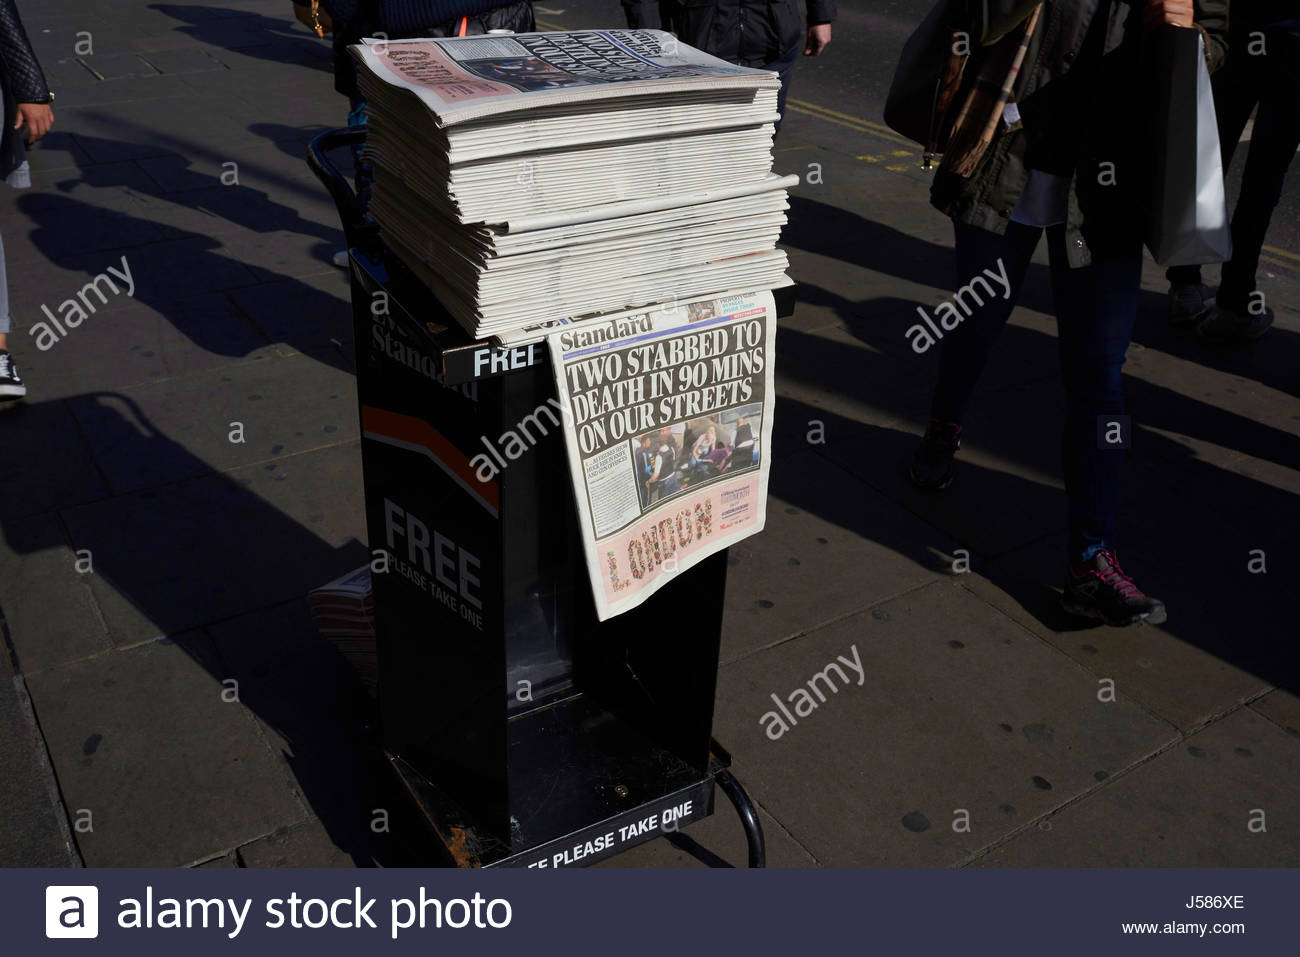 London Evening Standard  Free Newspaper on a stand with headline Two Stabbed to death in 90 mins on our streets - Stock Image